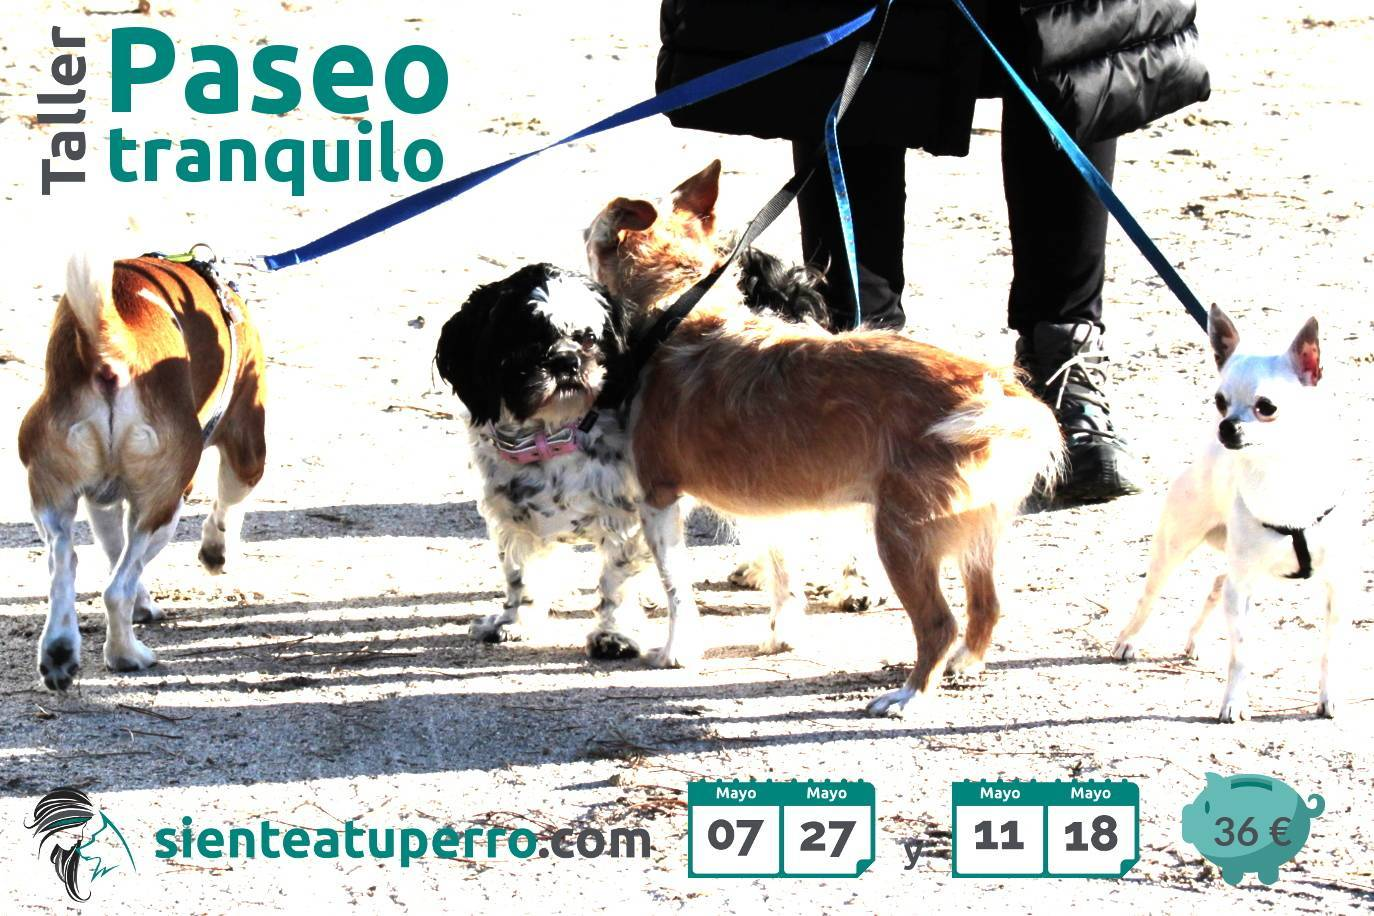 Taller Paseo tranquilo